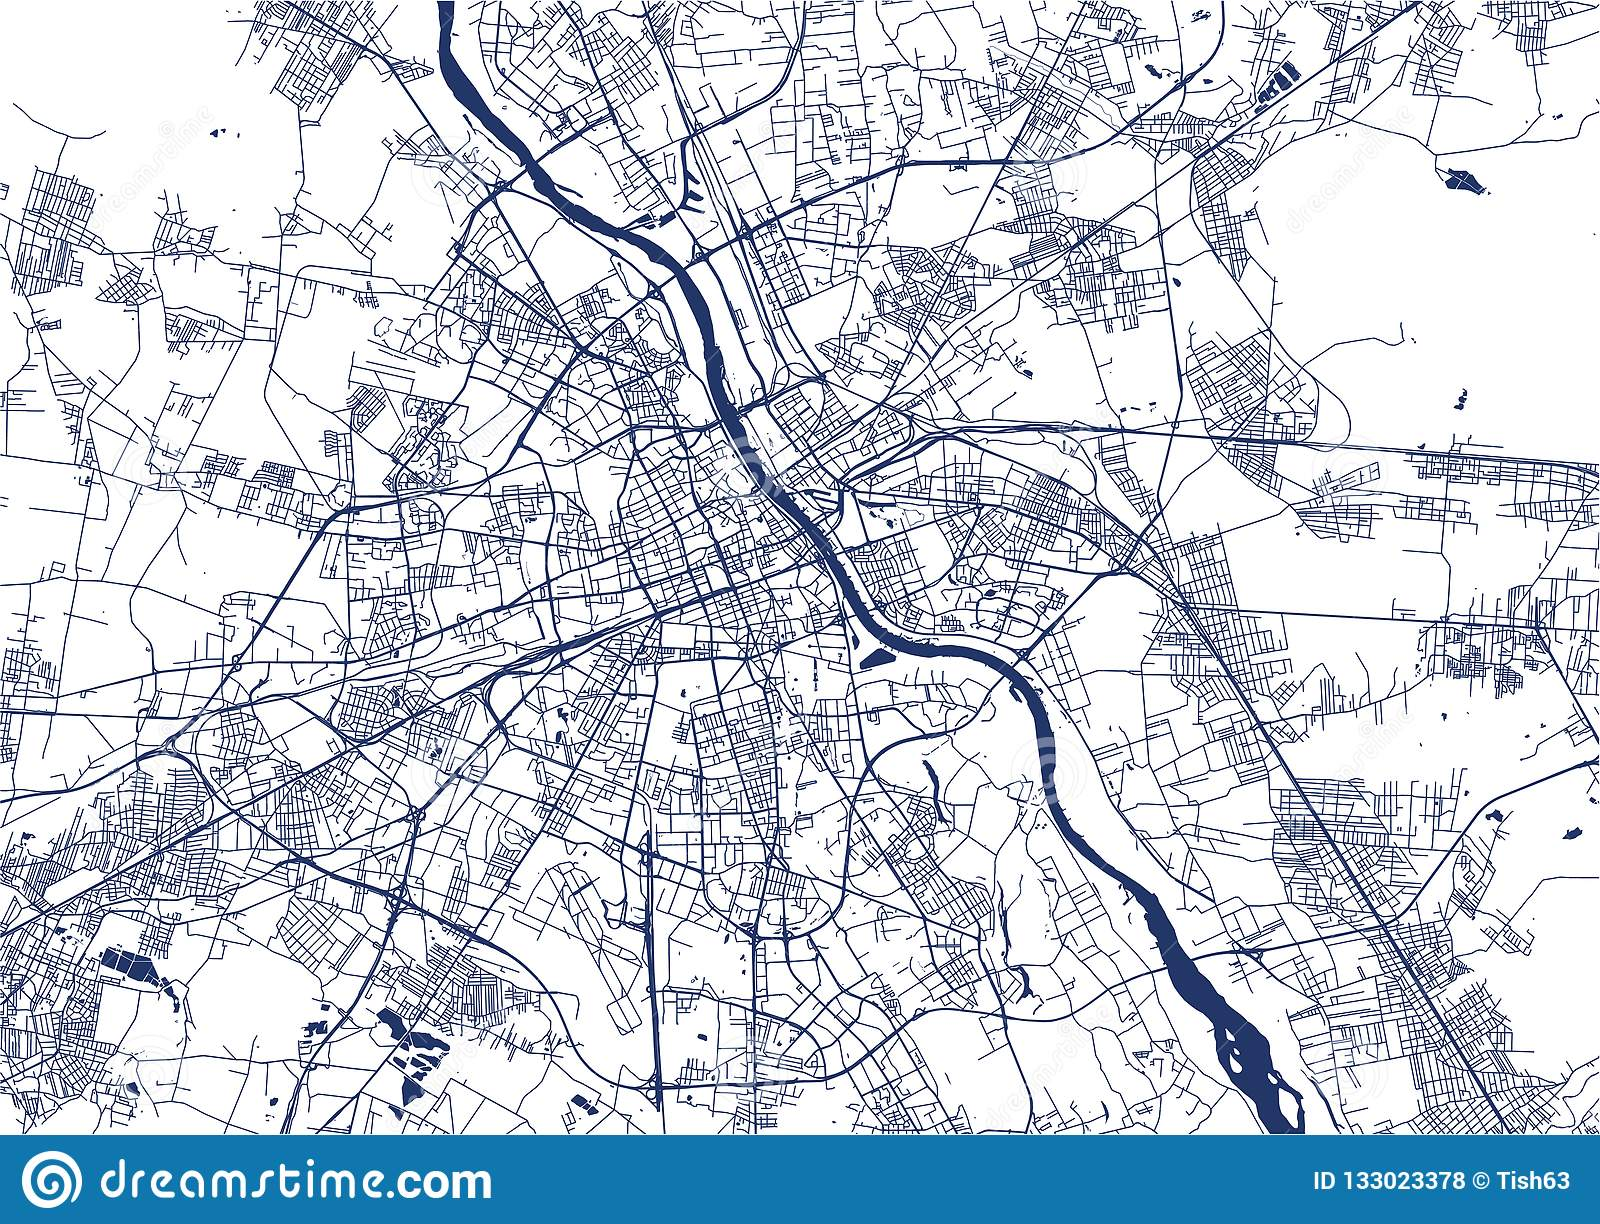 Map of the city of Warsaw, Poland